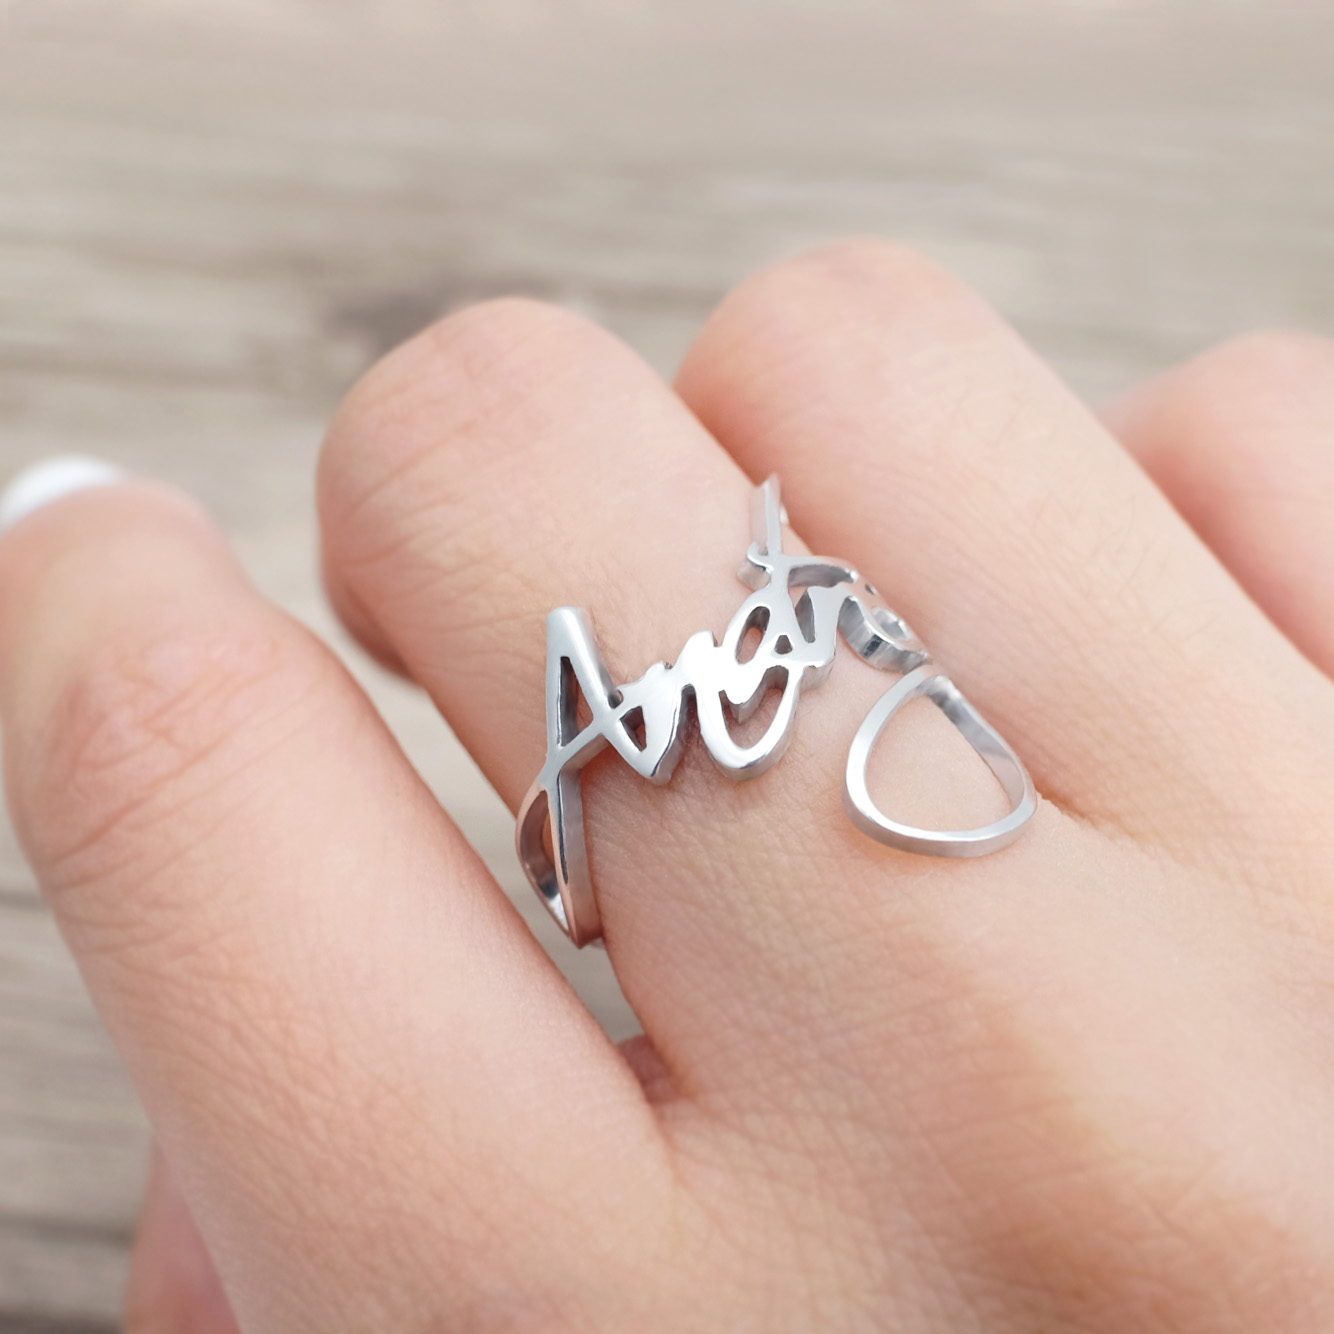 Custom Name Ring Personalized Name Jewelry Custom Word Rings Nameplate Rings For Couple Gift For Women Girl Valentines Gift